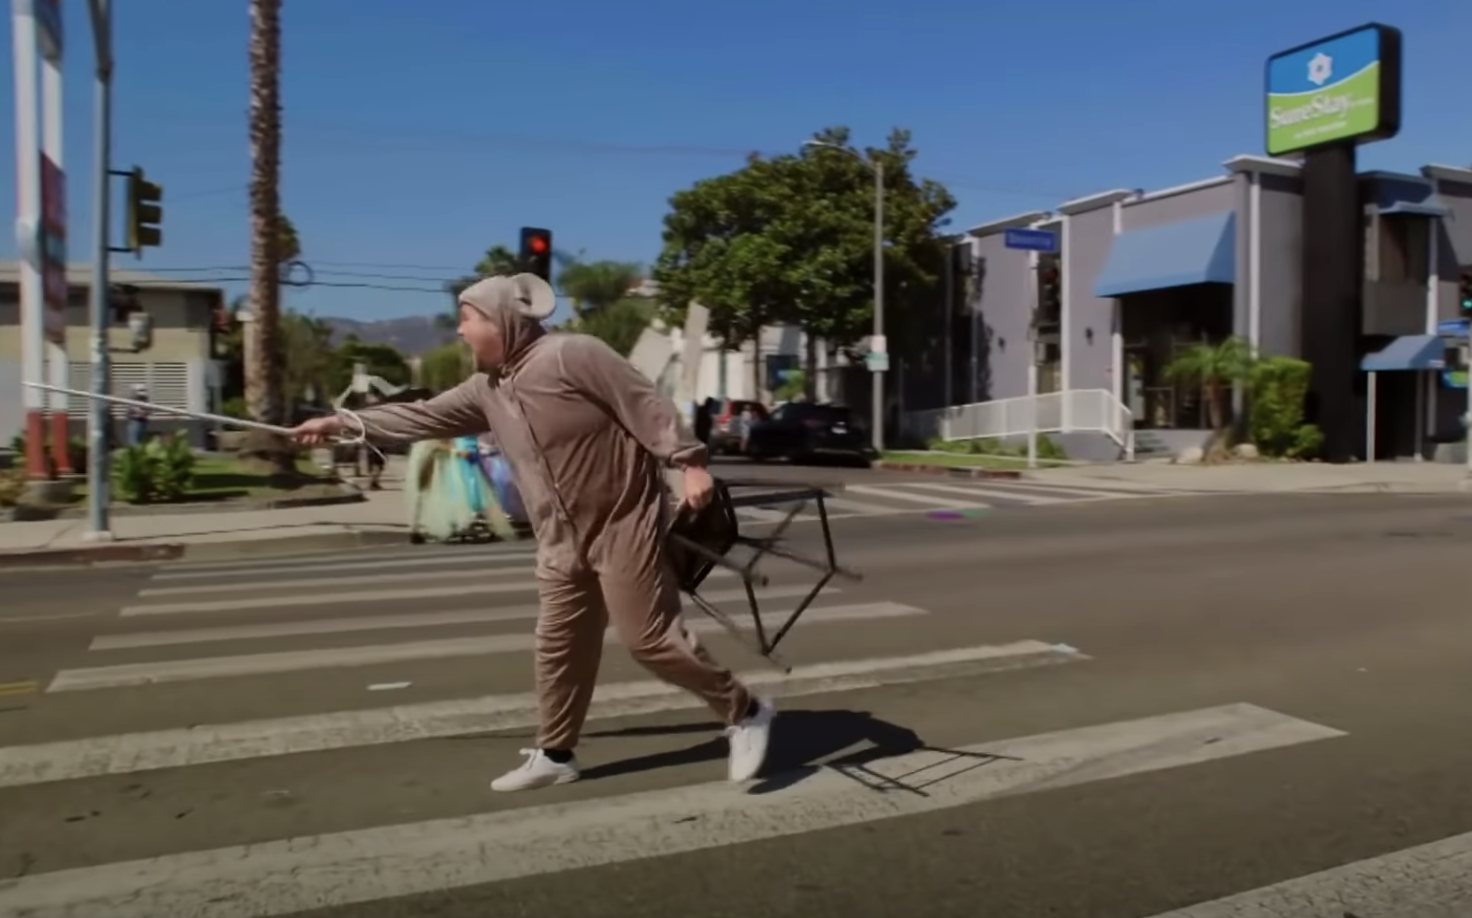 James dressed as a mouse standing in the crosswalk and holding a chair